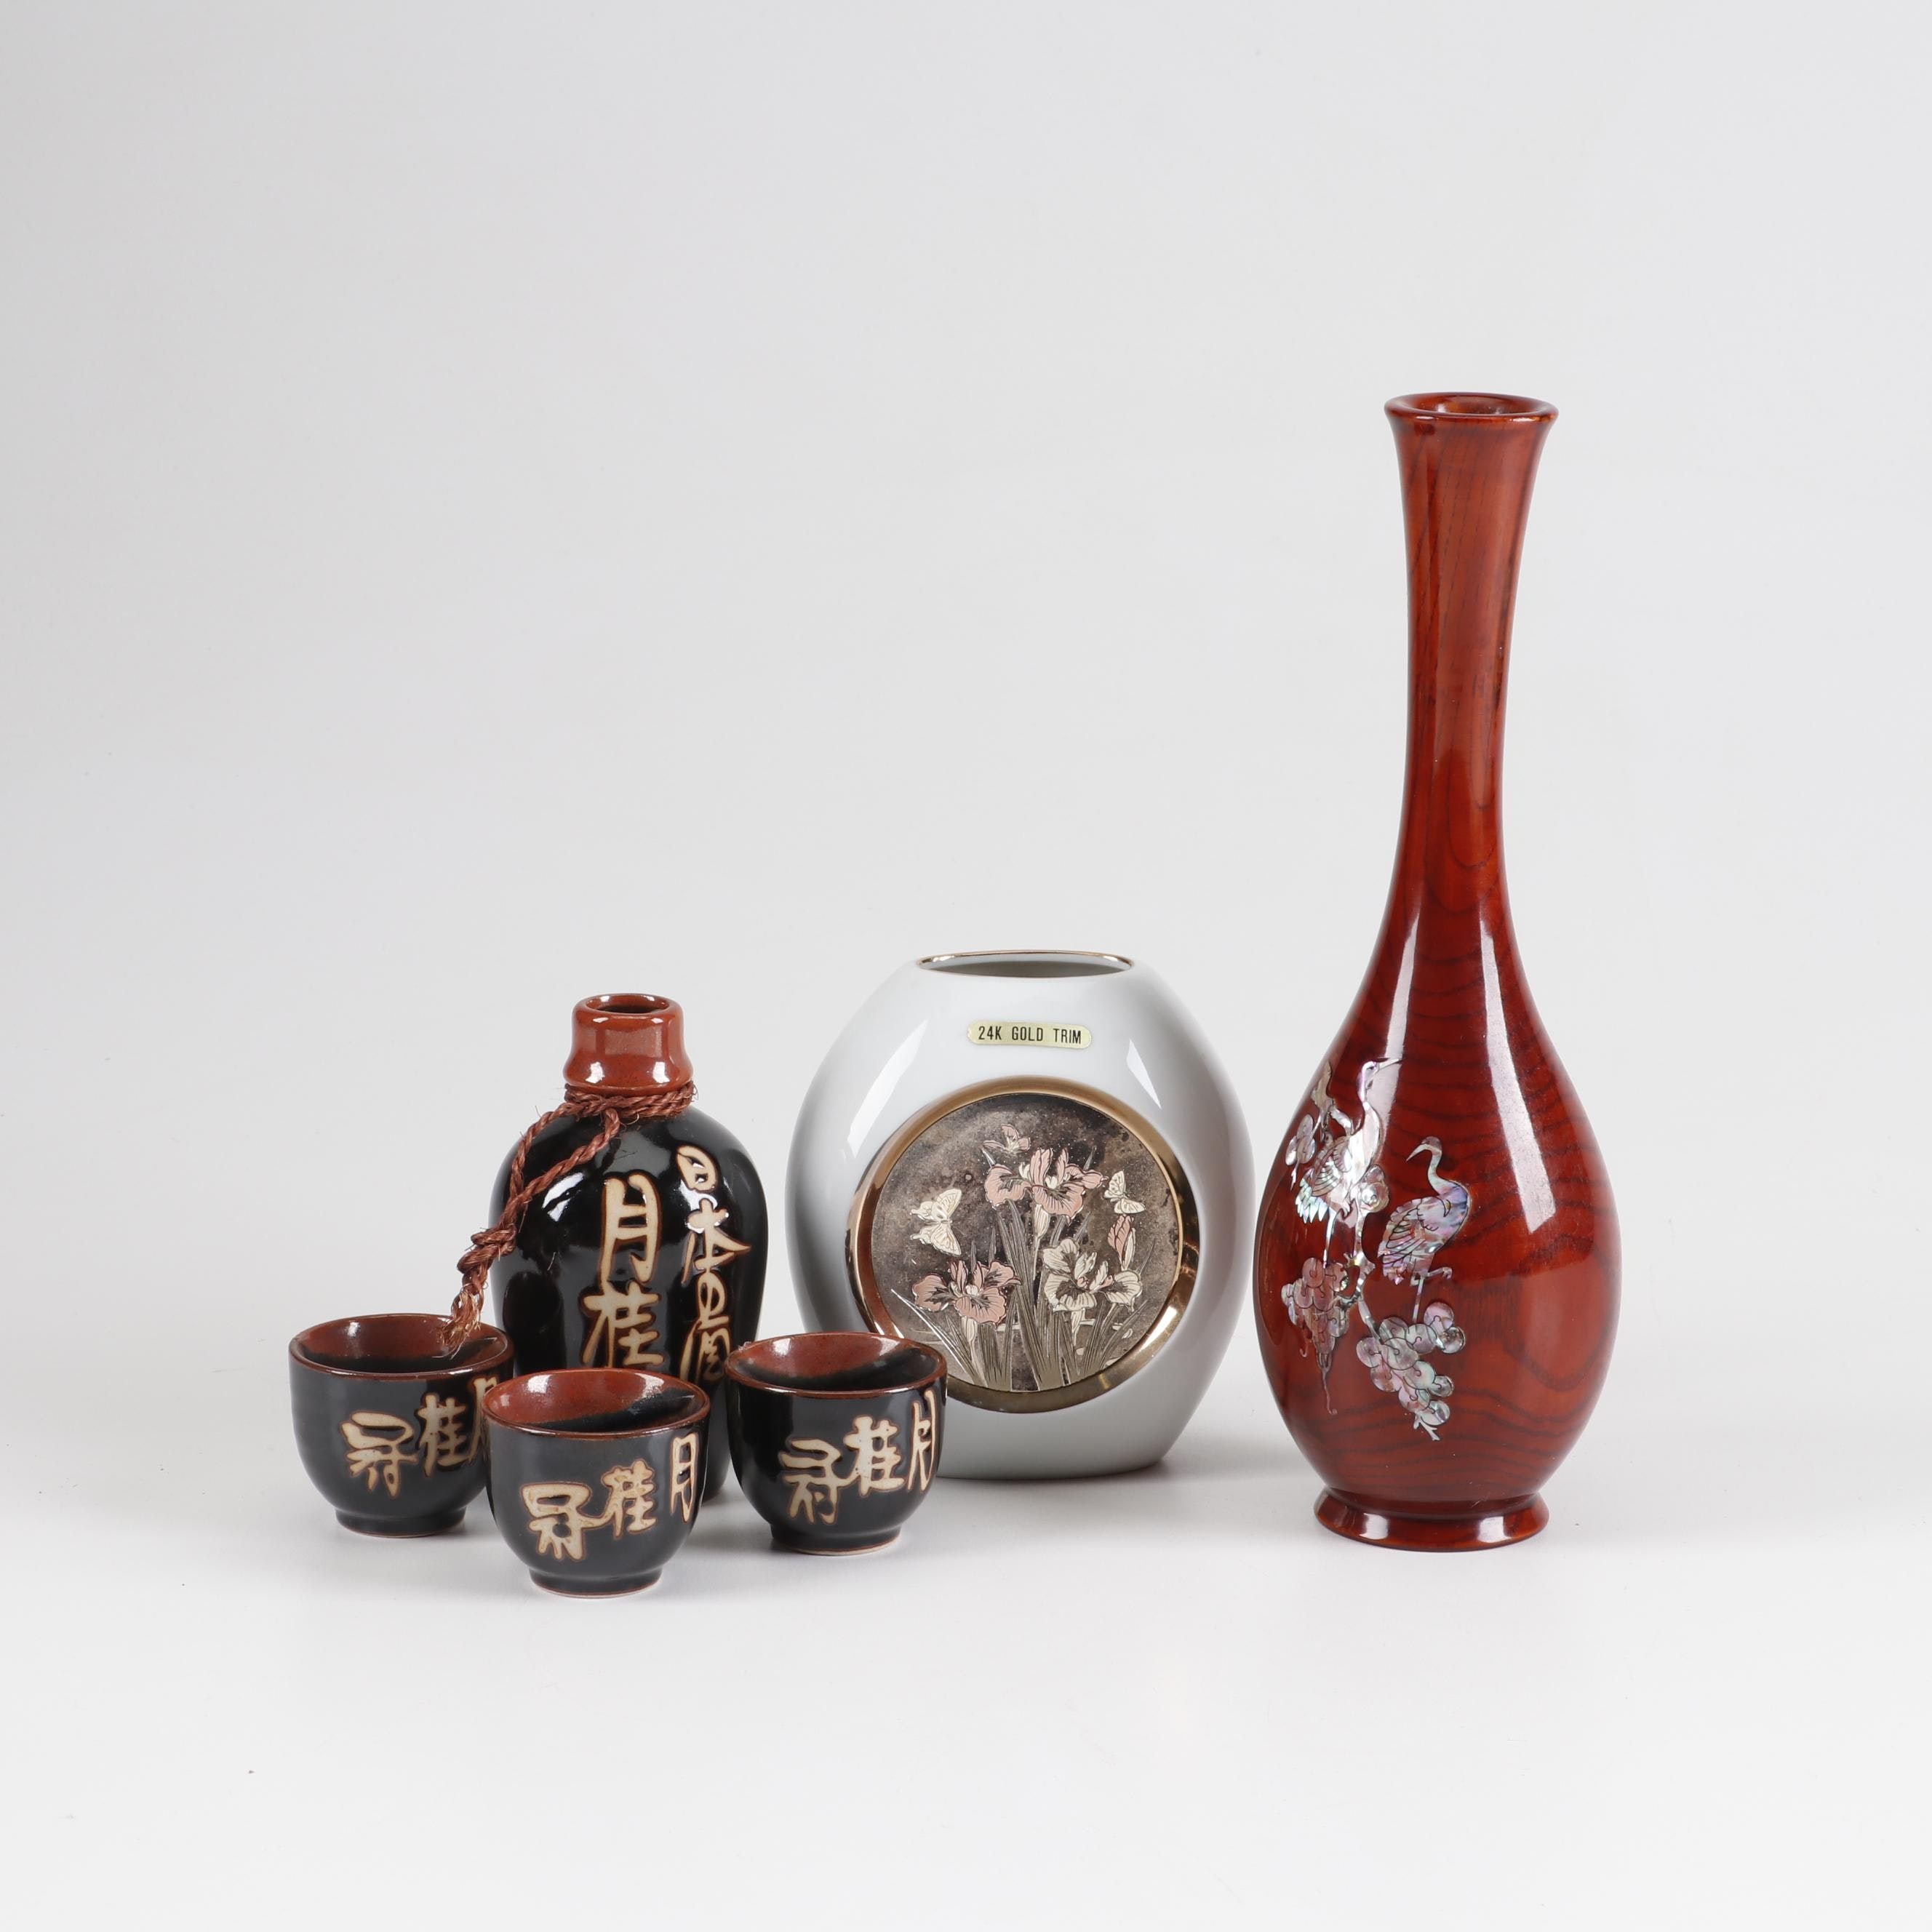 Japanese Earthenware Sake Set, Inlaid Rosewood Vase and Gold Trim Chokin Vase